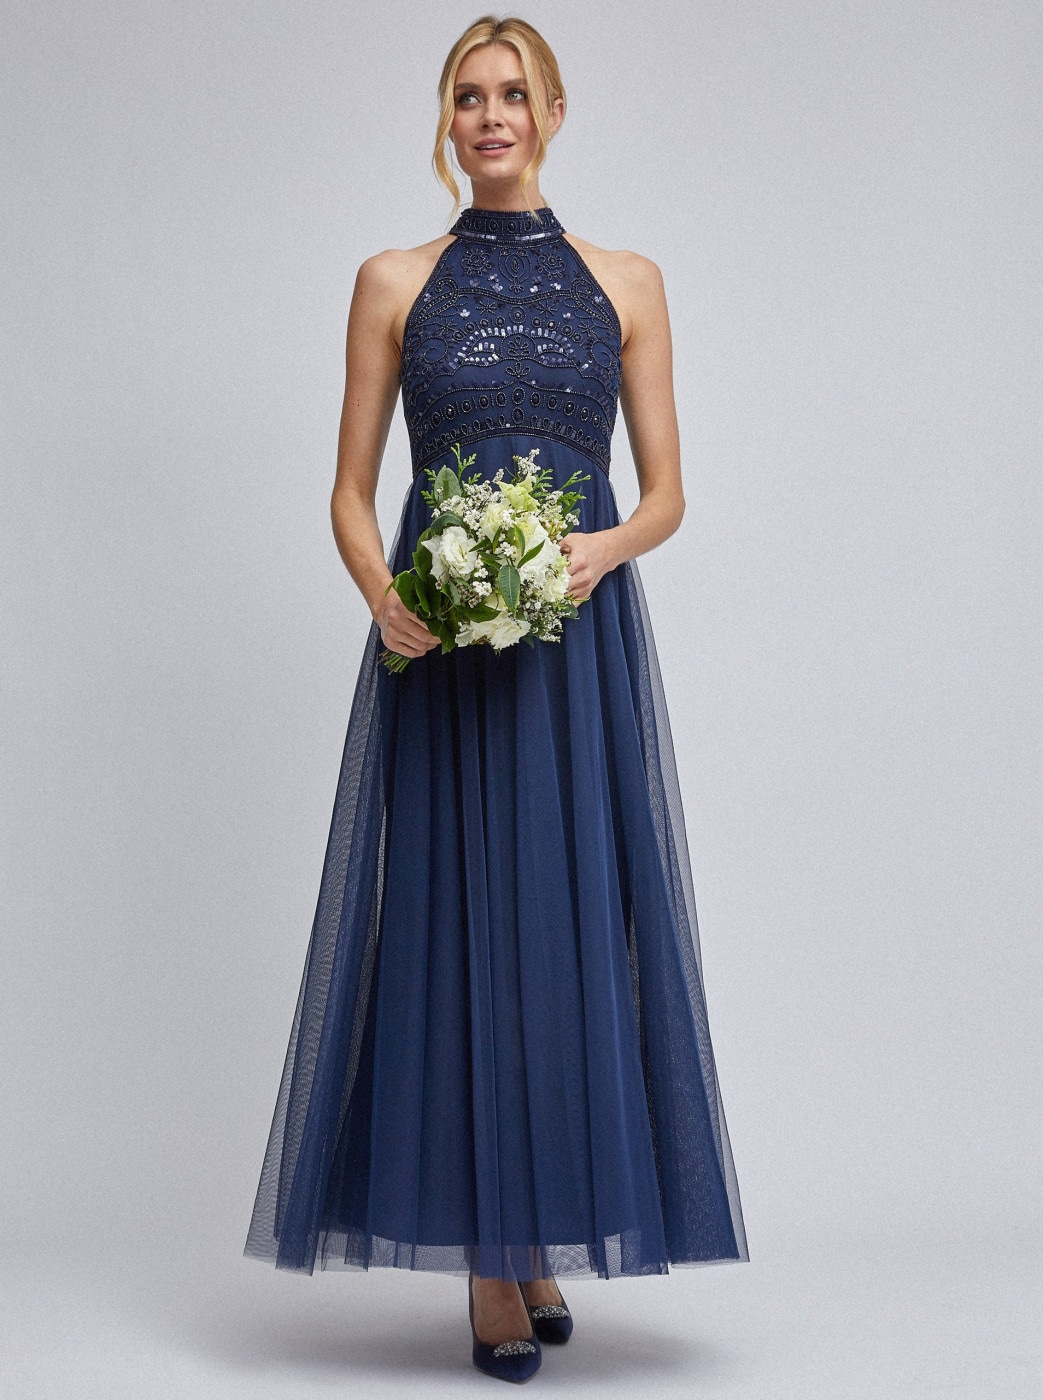 Dark blue tulle maxid dress by Dorothy Perkins